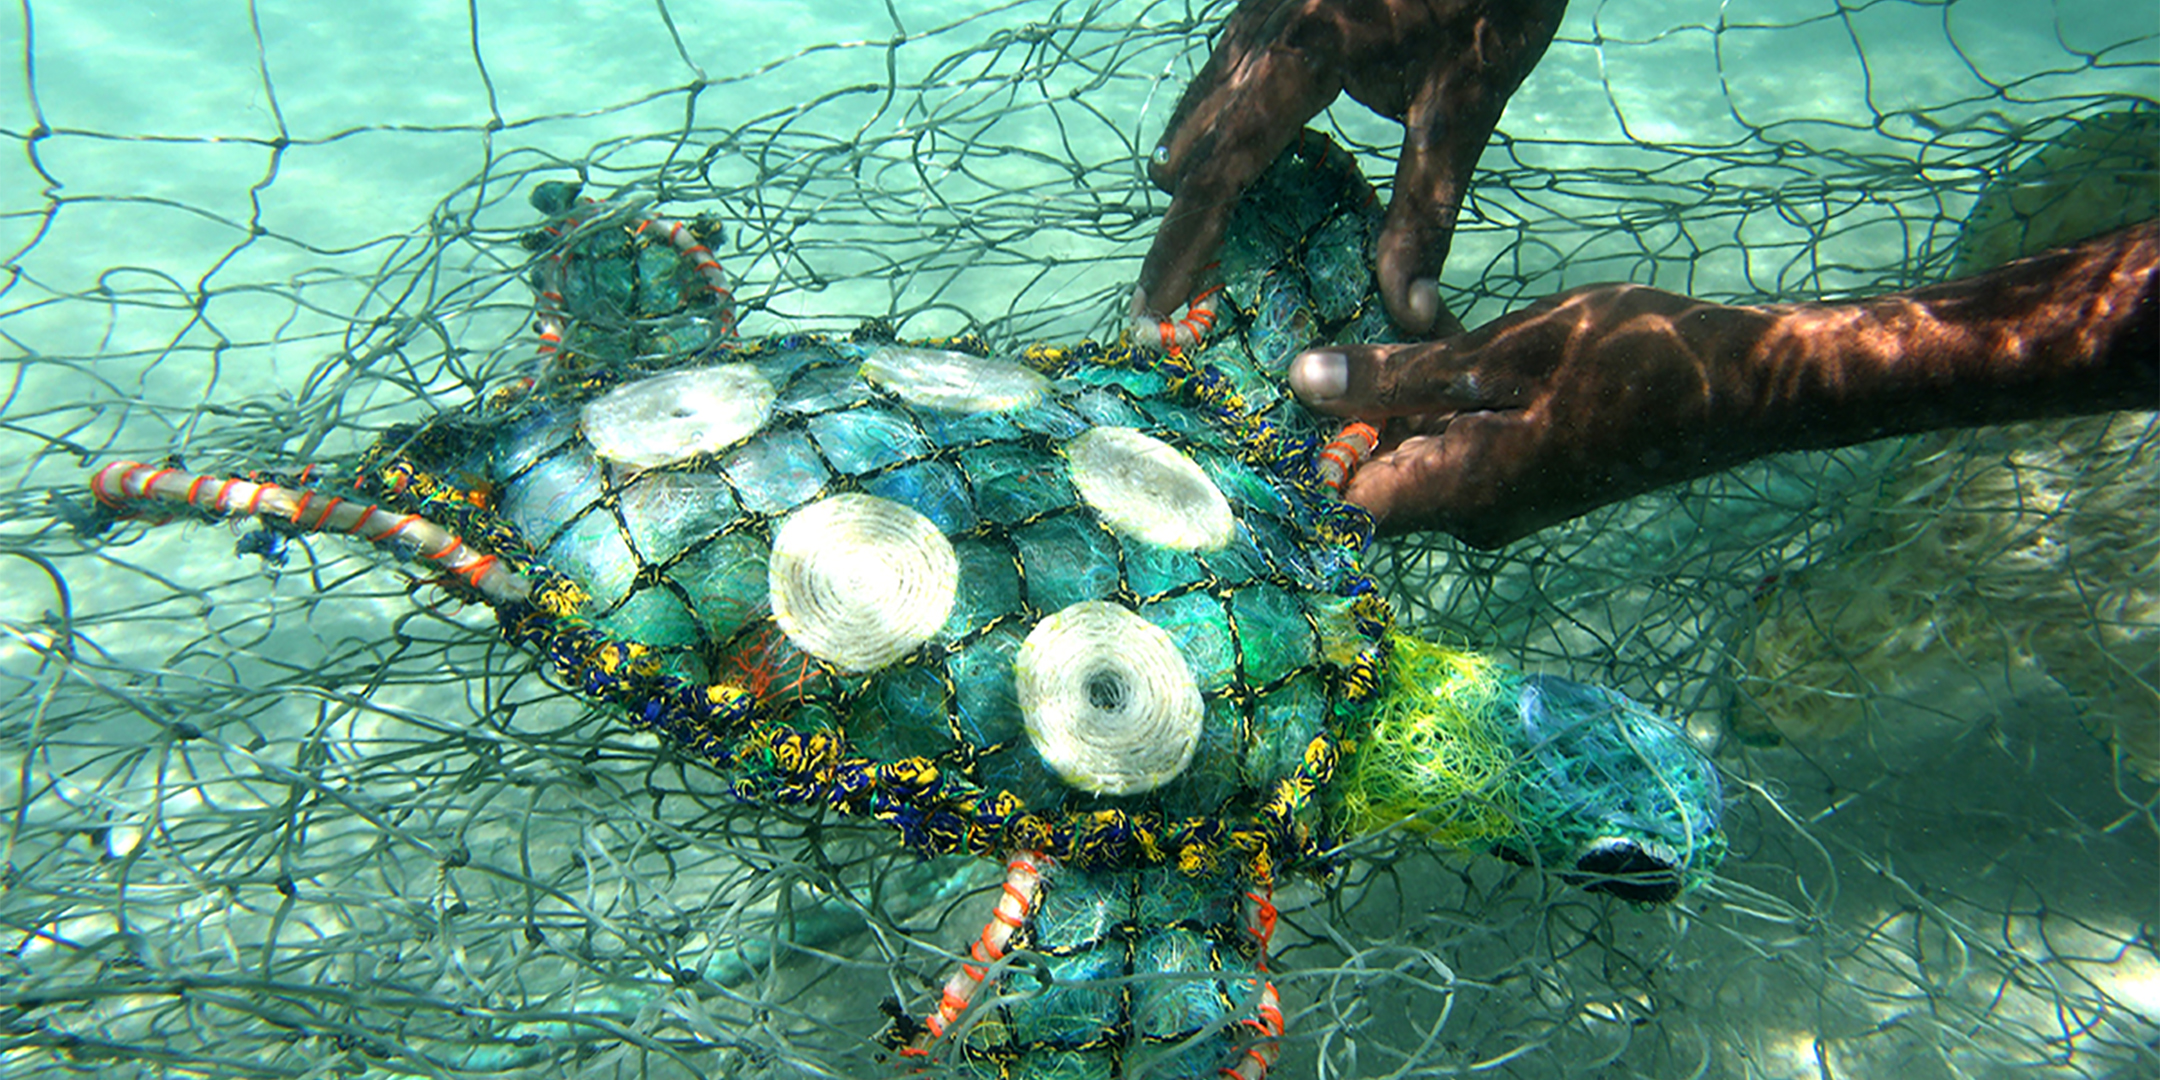 Ghost net turtle in the water of Erub Island. Image: Erub Arts.